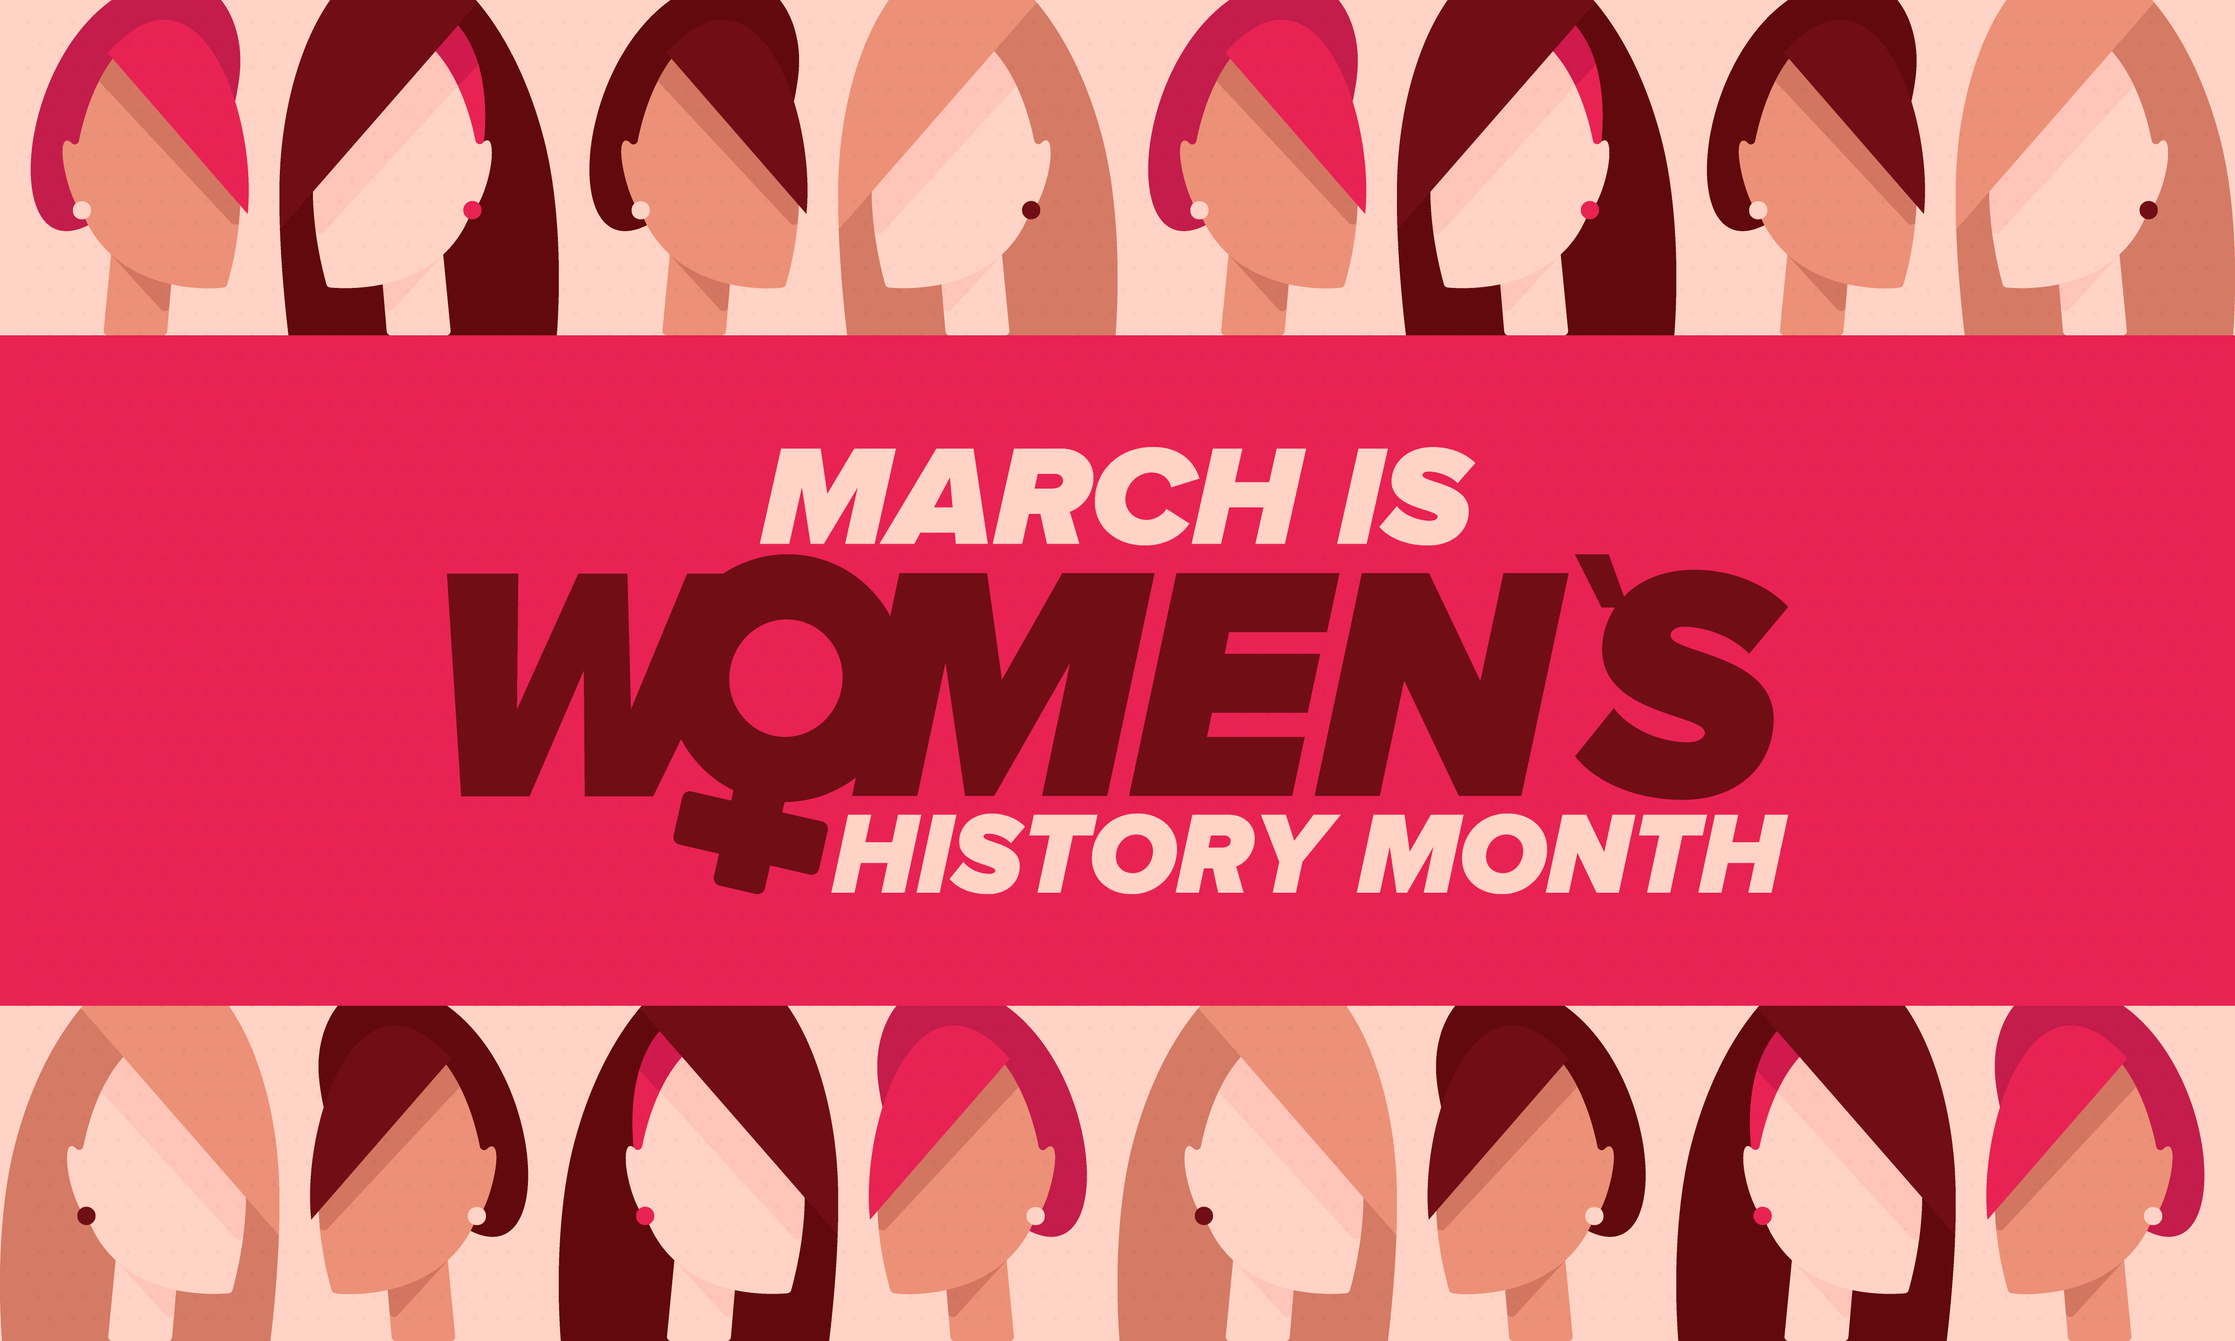 Celebrating Women's History Month in March 2021.